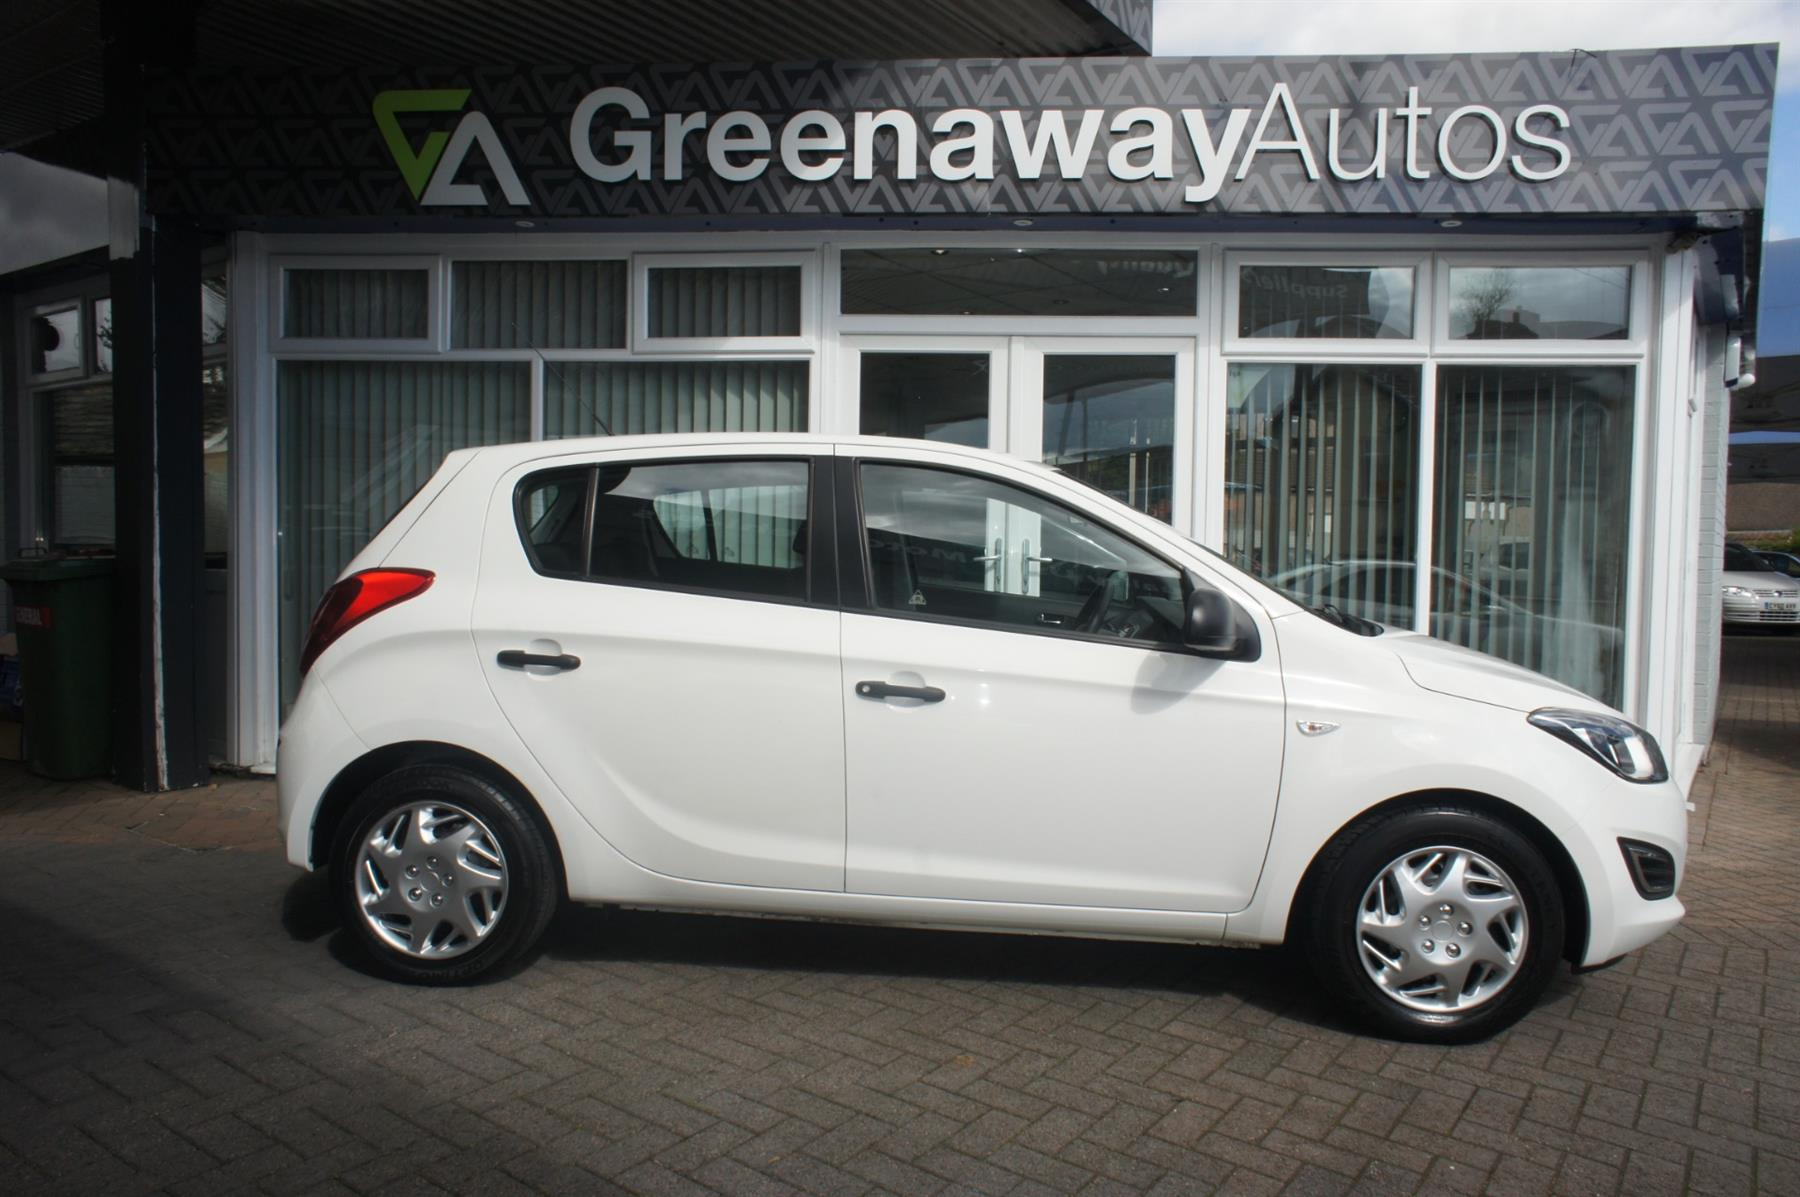 used 2013 hyundai i20 classic 0 finance on this car for sale in glamorganshire